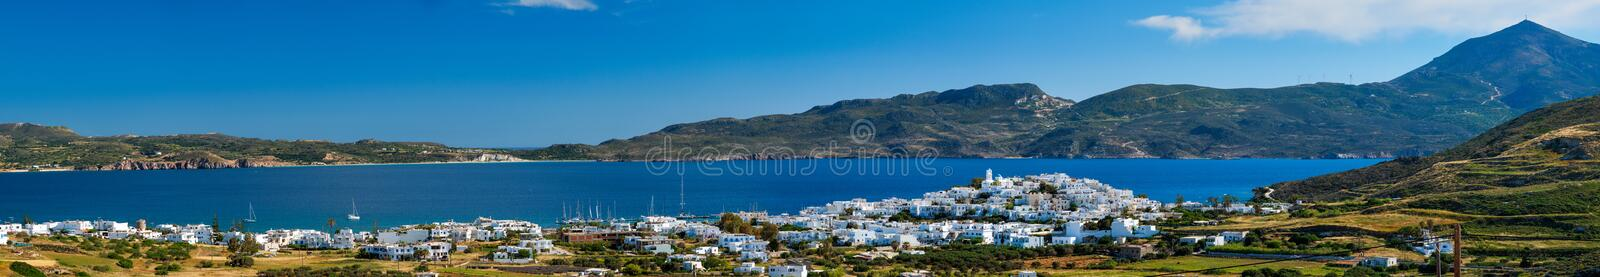 View of Plaka village with traditional Greek church. Milos island, Greece royalty free stock image